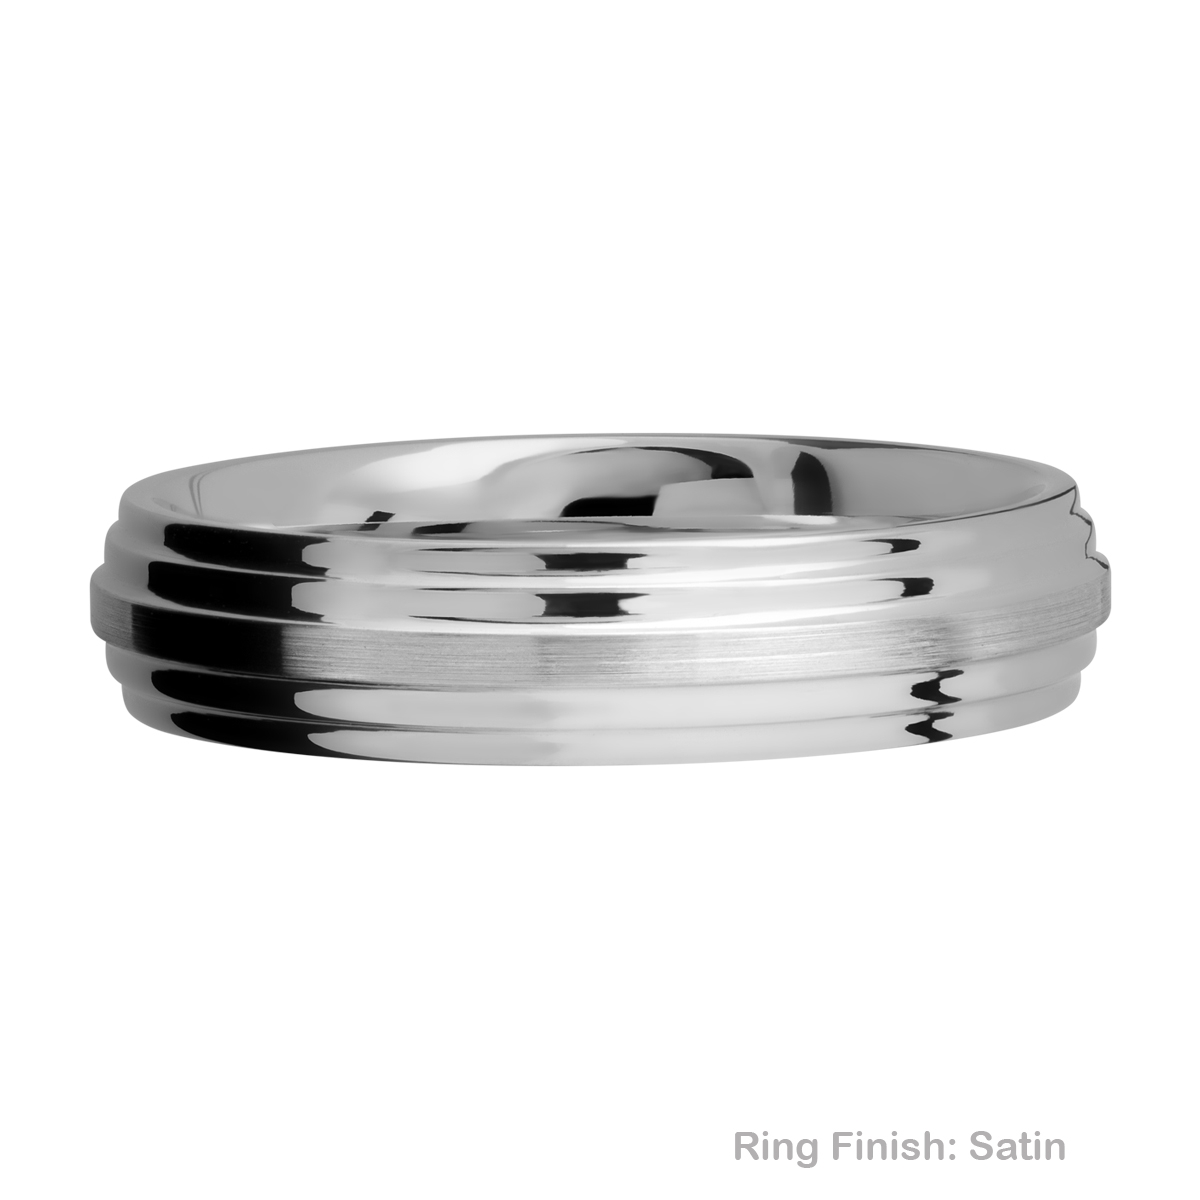 Lashbrook 5F2S Titanium Wedding Ring or Band Alternative View 6